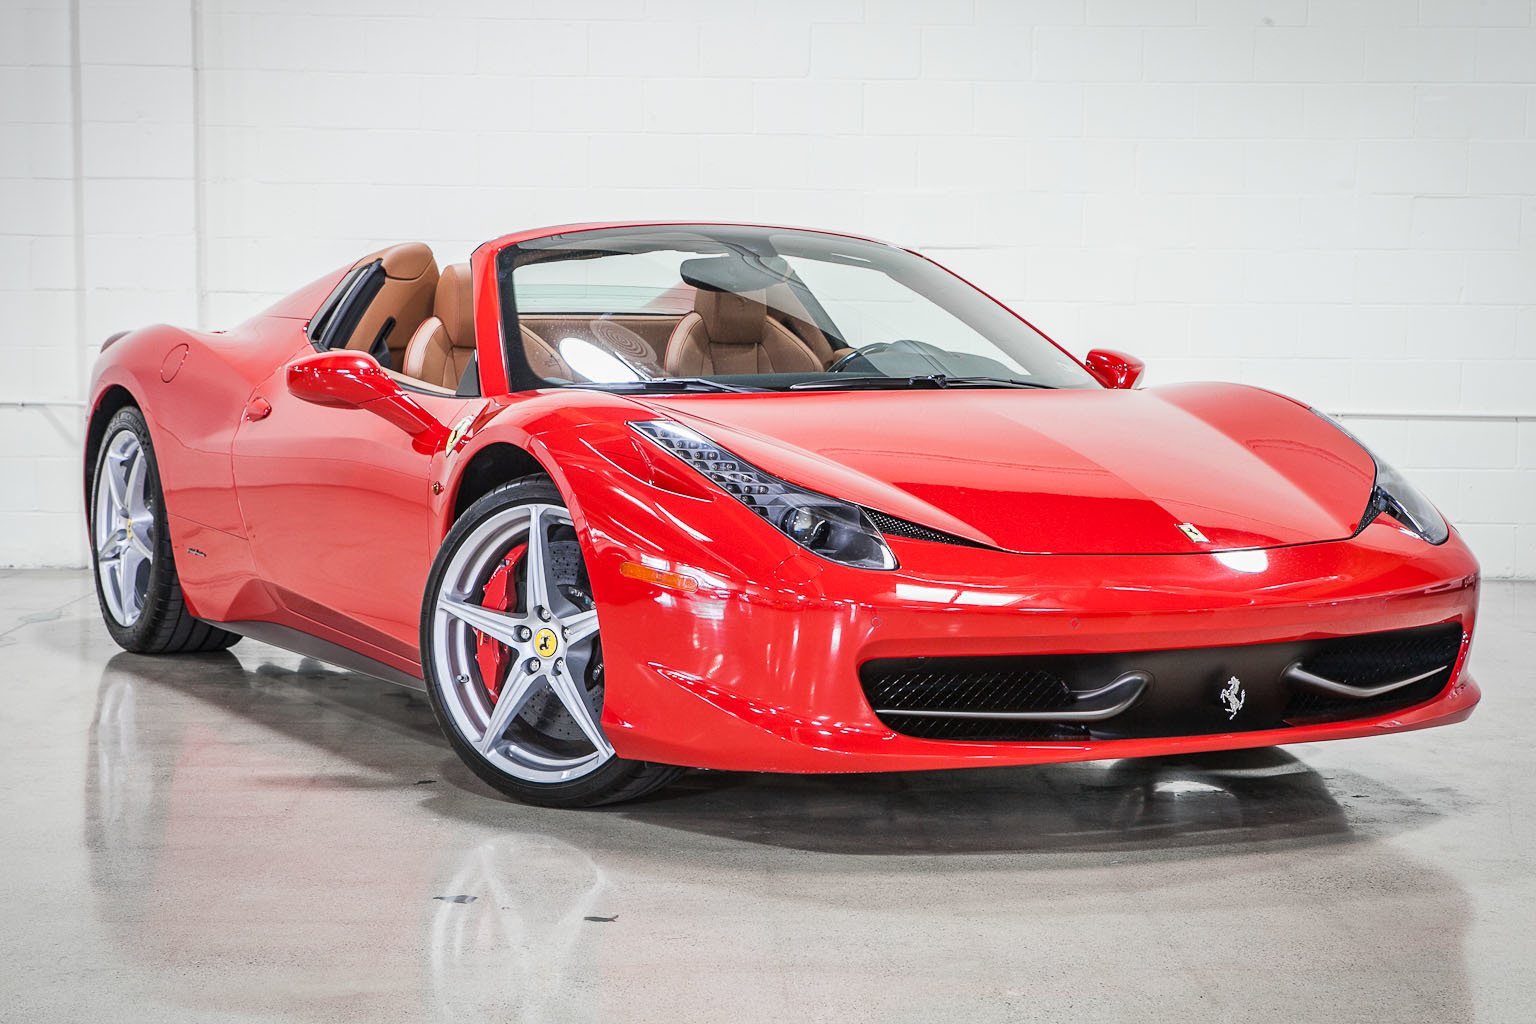 Ordinaire 2012 Ferrari 458 Spider